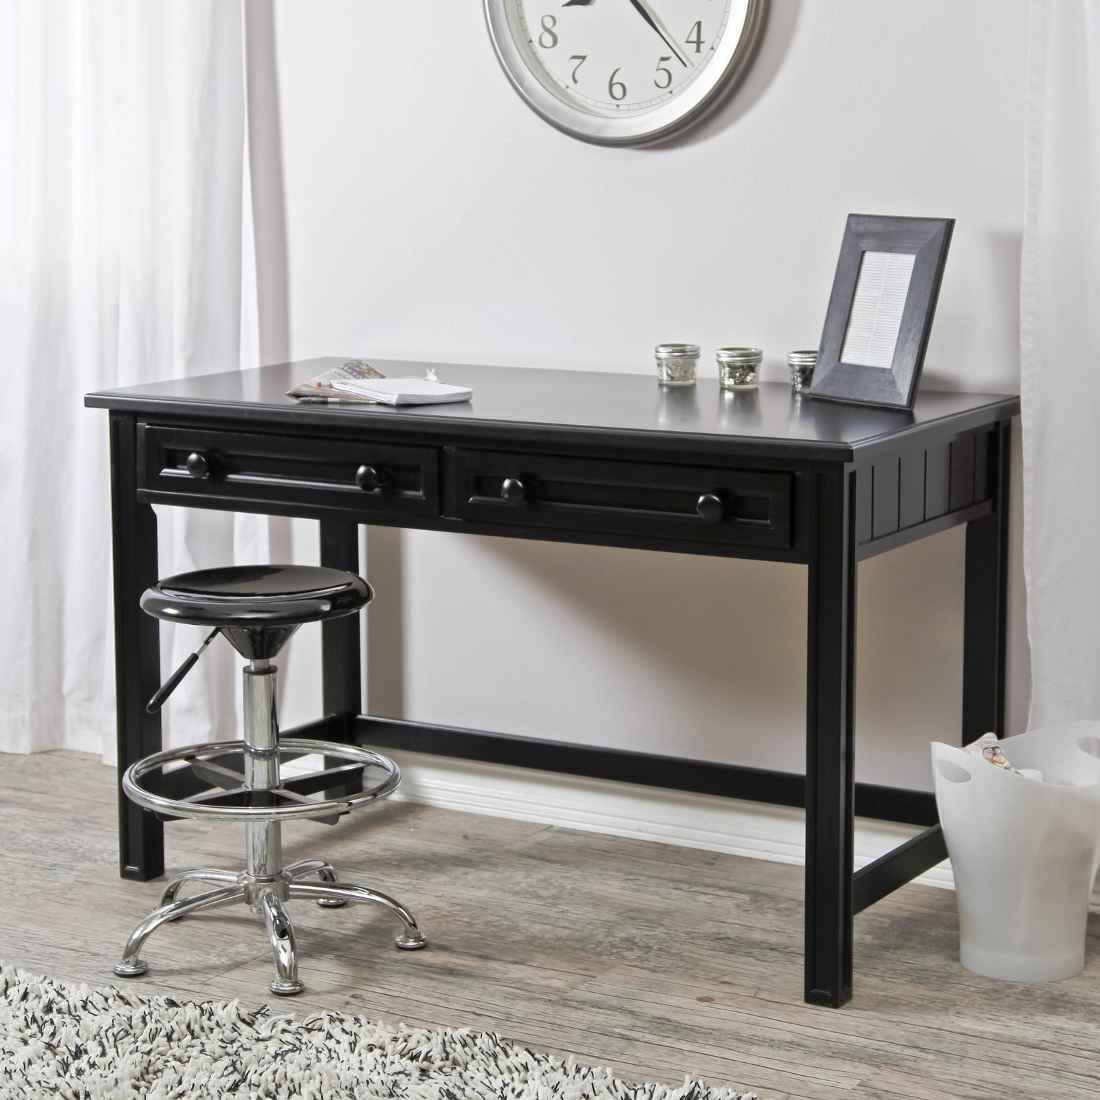 Merveilleux Lovely Design Of The Black Desk With Drawers With White Wall Added With  Grey Wooden Floor. Oaken Small Desk With Round Drawer Idea